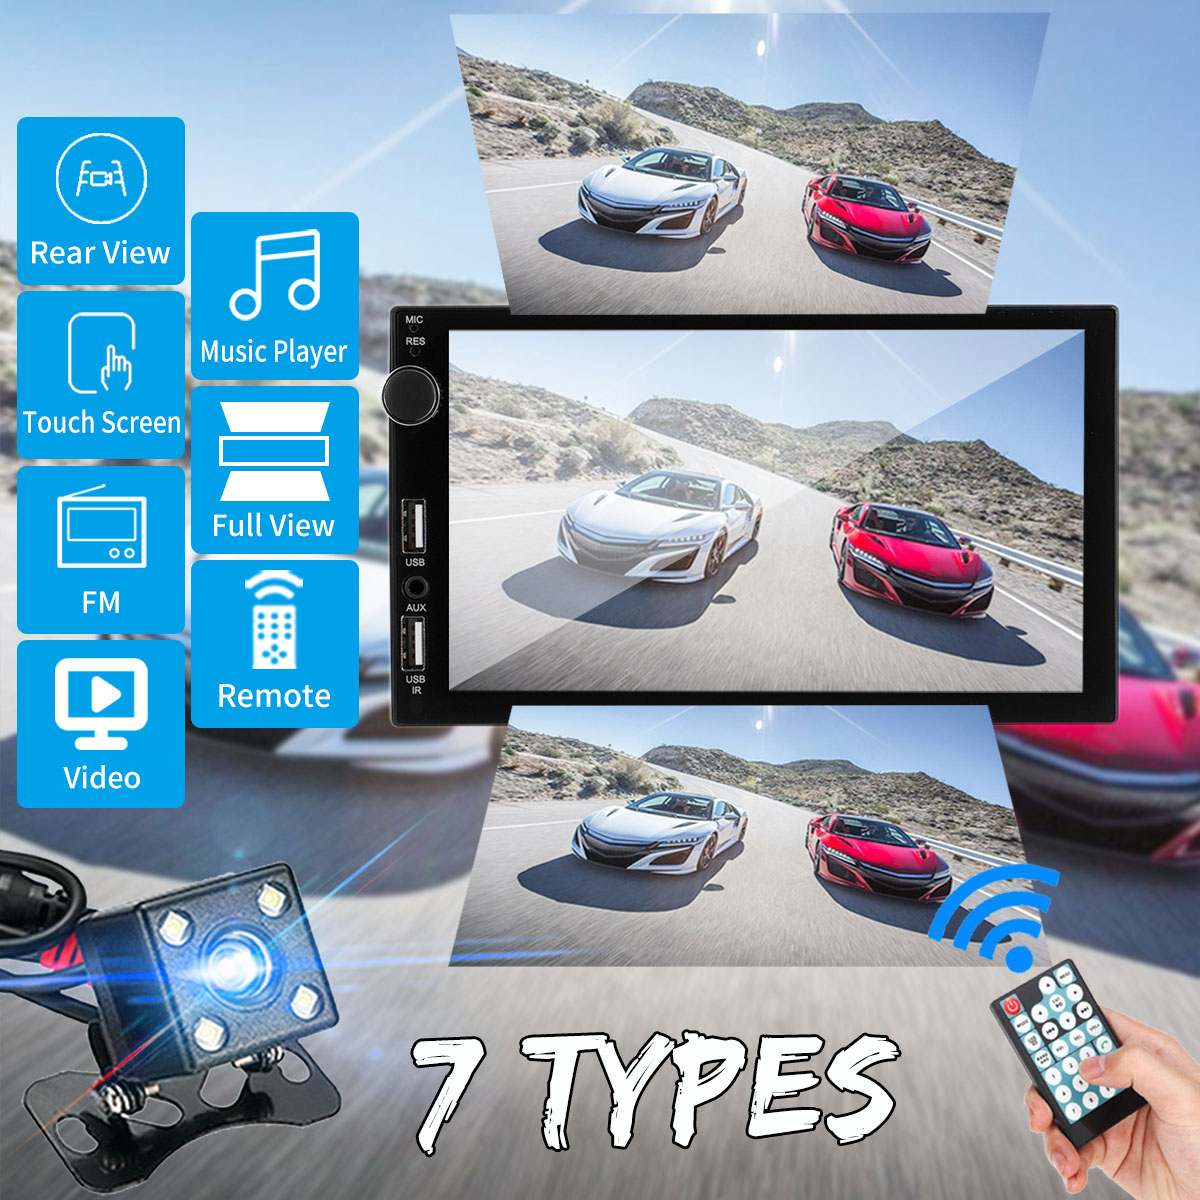 7'' IPS Full View Touch Screen Car Multimedia Player MP5 Player 2DIN Bluetooth Stereo 1080P Car Radio With Rear View Camera